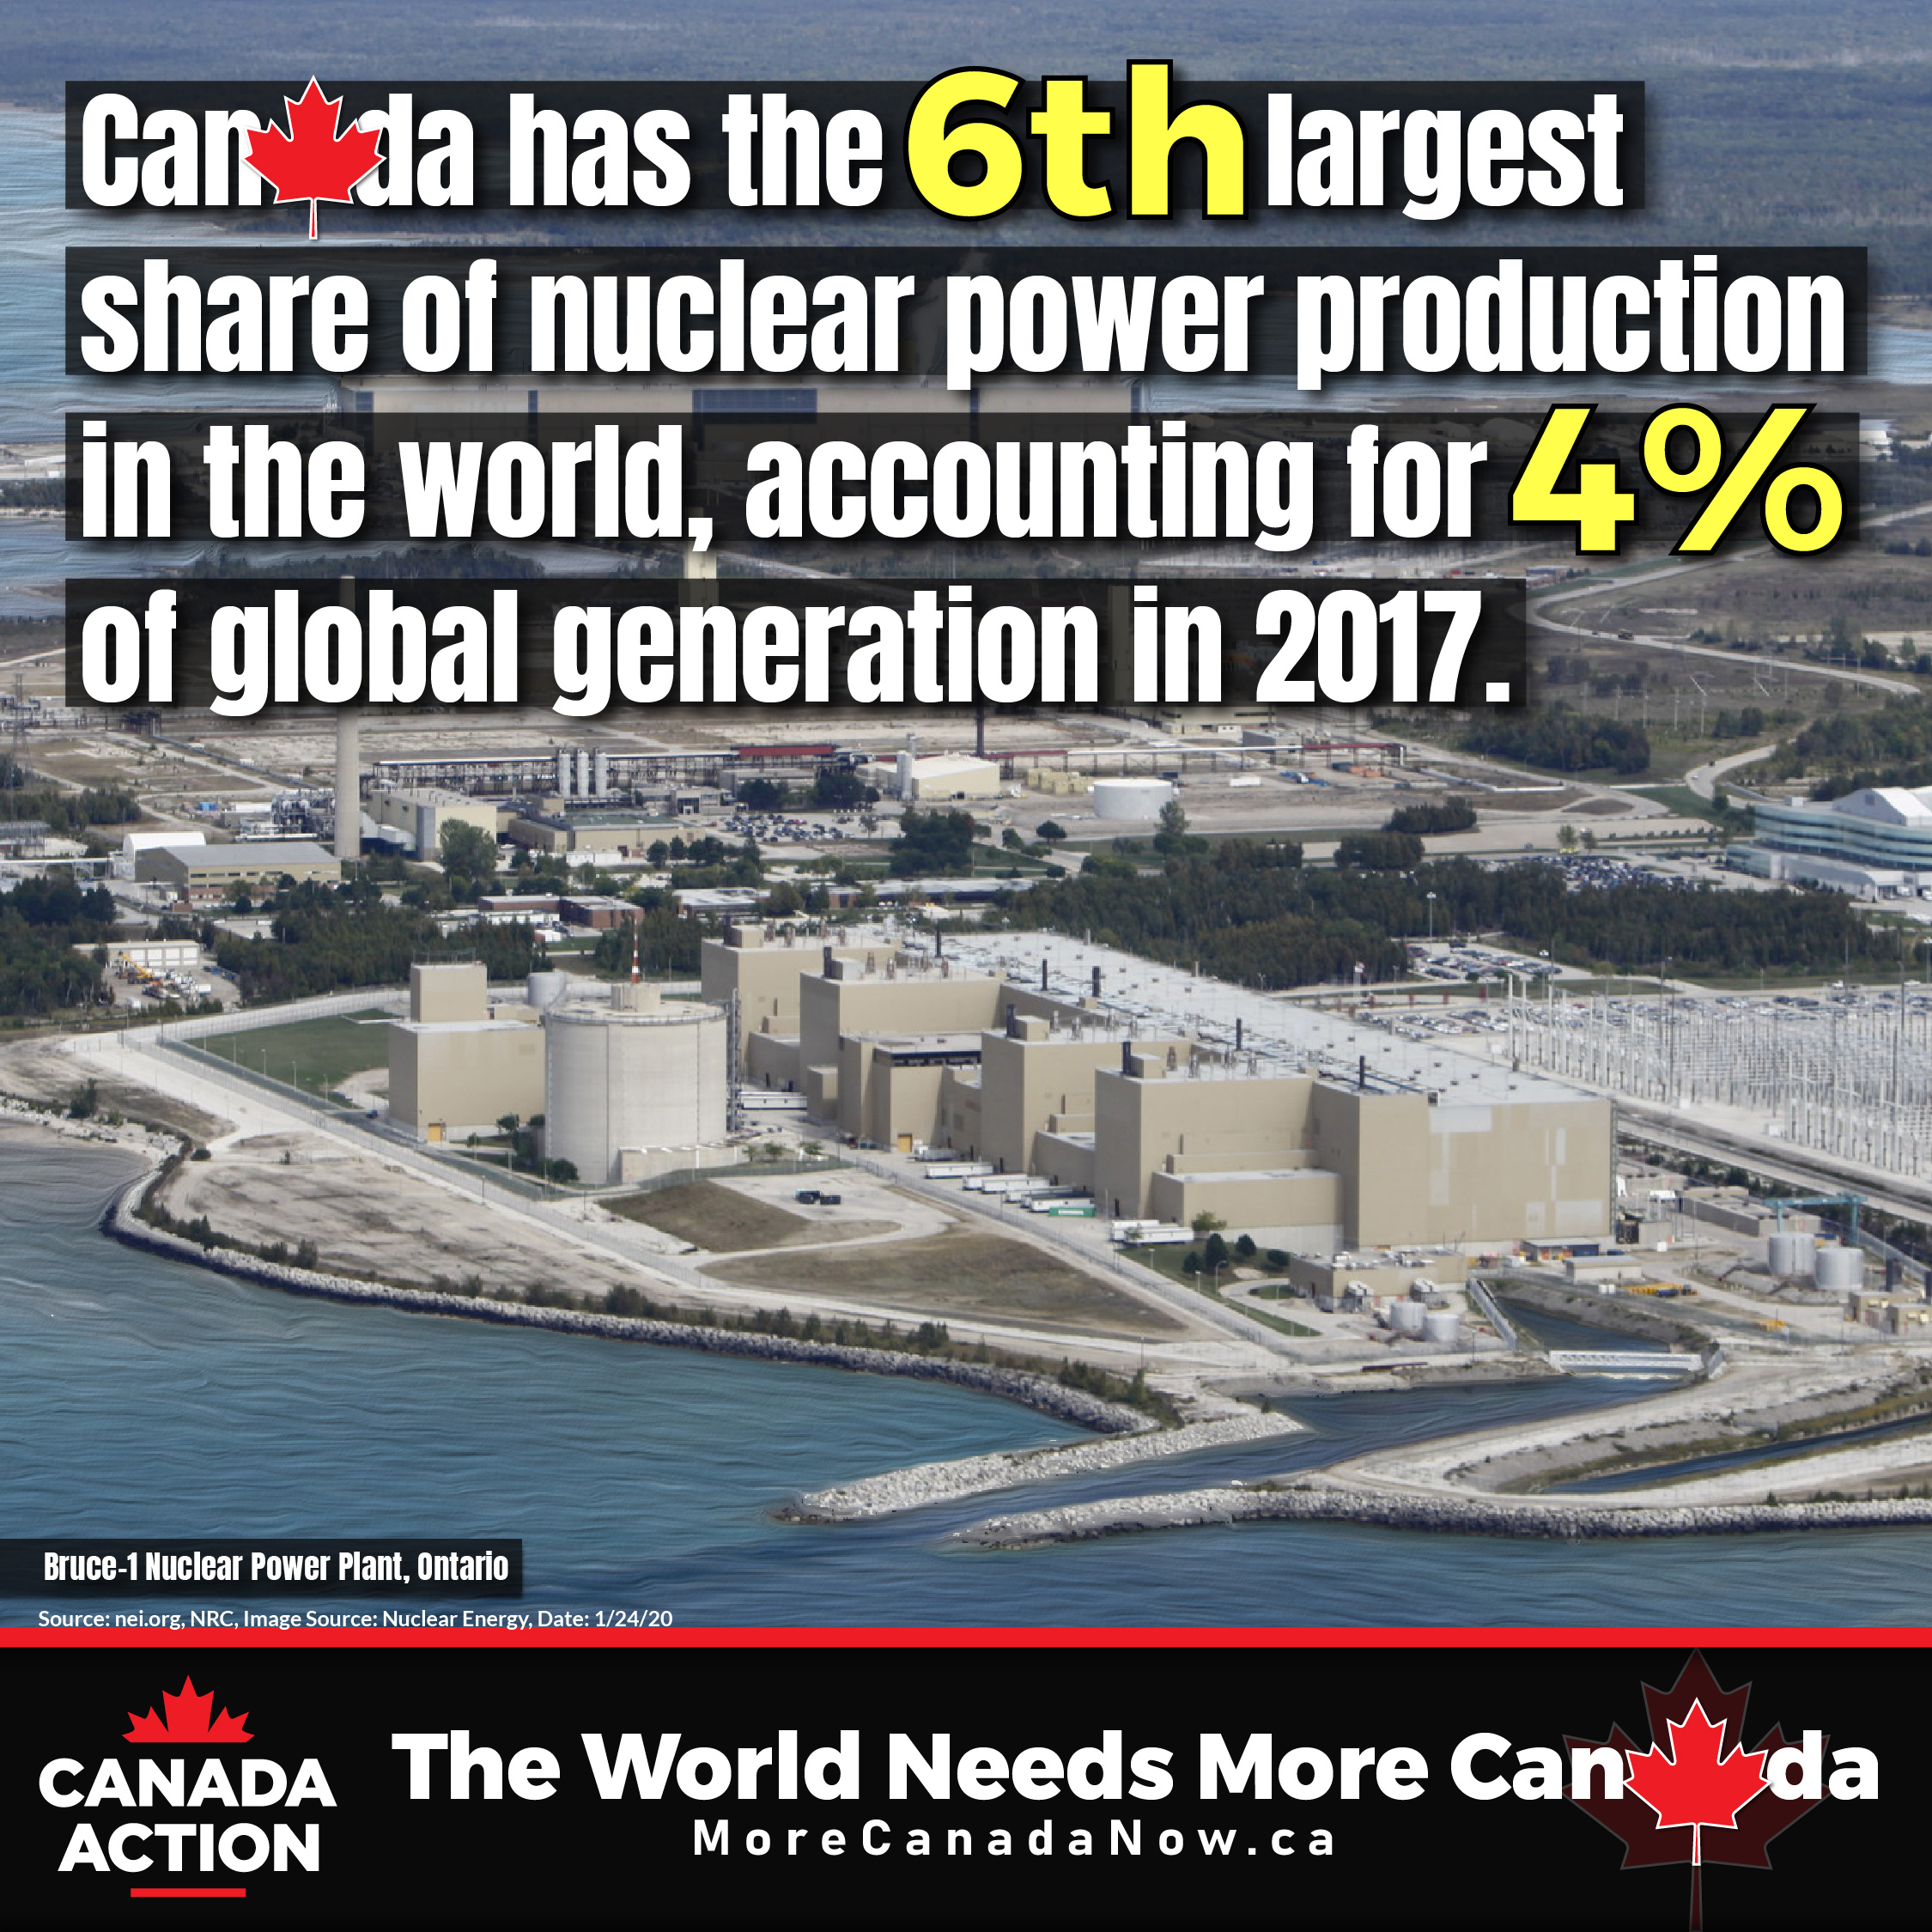 Canada has 6th largest global share of nuclear power generation